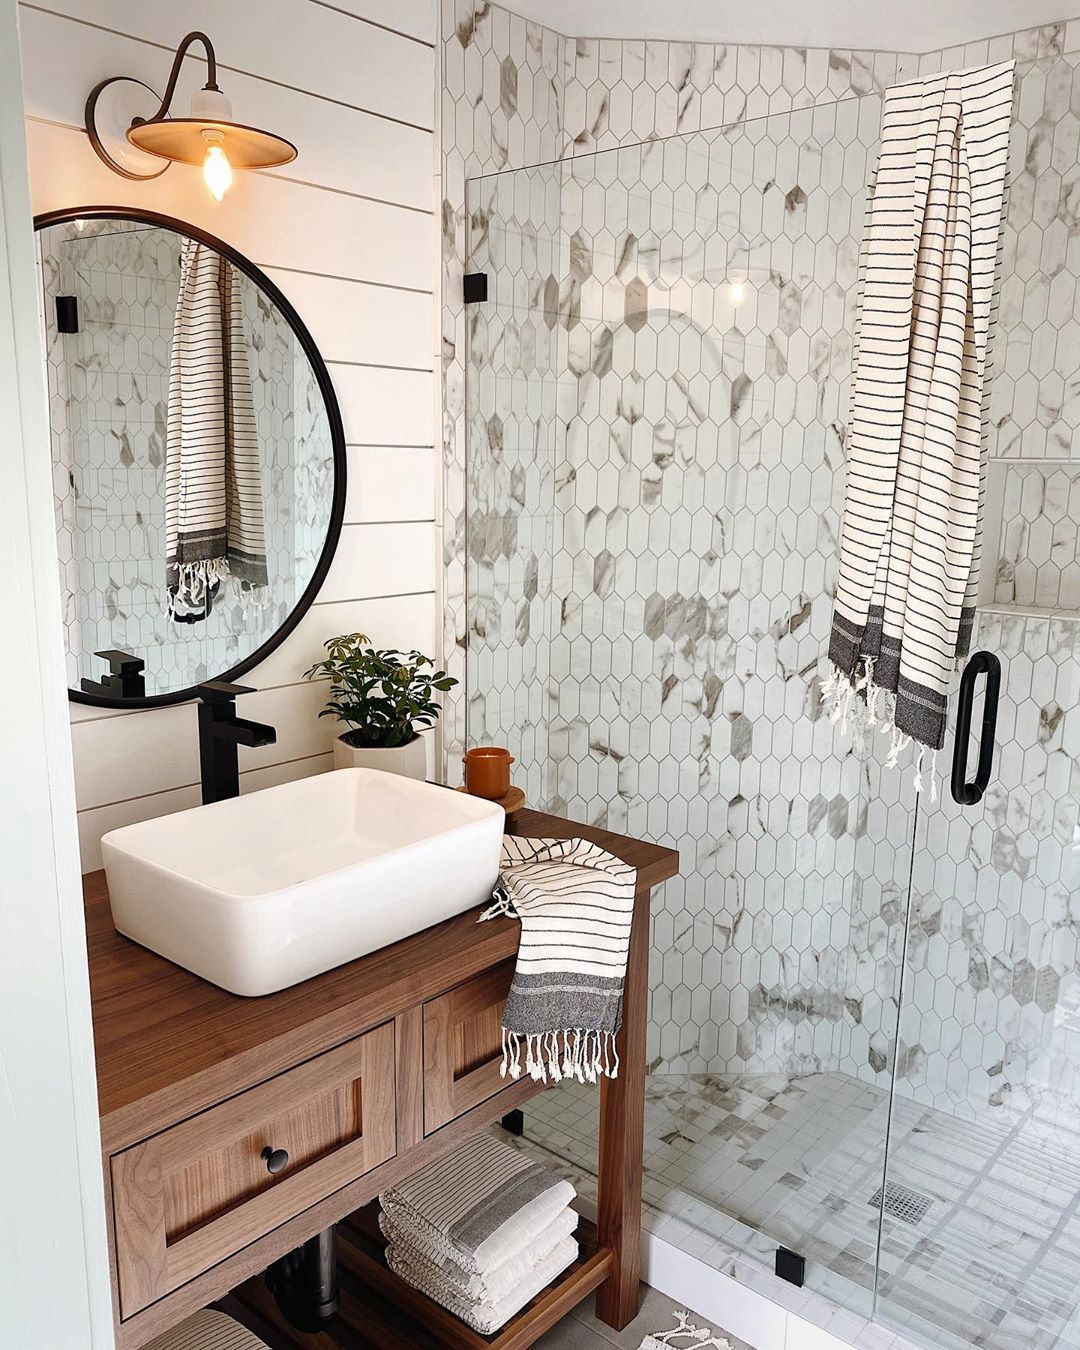 A S H L E Y P E T R O N E On Instagram Do You Think The New Tile Is Better Than The Old W Beautiful Bathrooms Bathroom Renovation Small Bathroom Remodel [ 1350 x 1080 Pixel ]